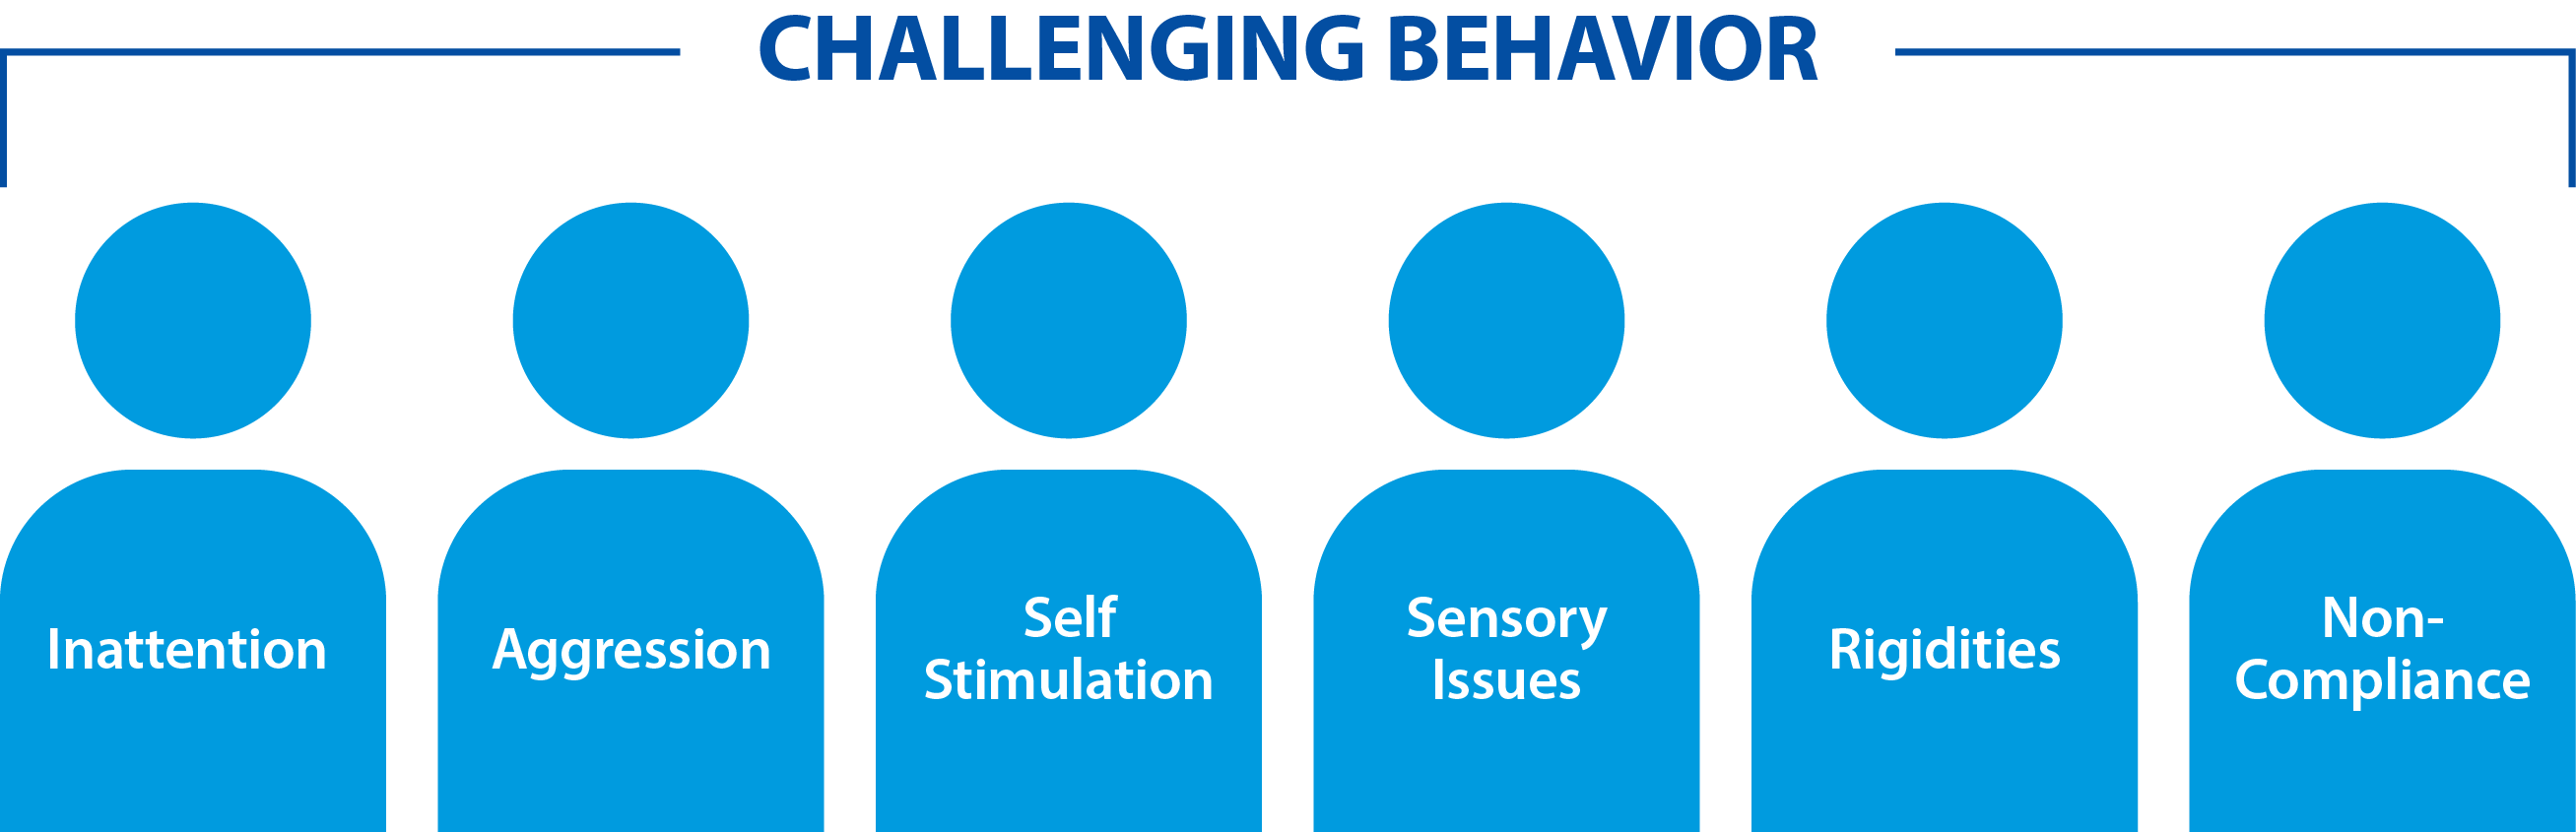 autism-partnership-aba-challenging-behavior